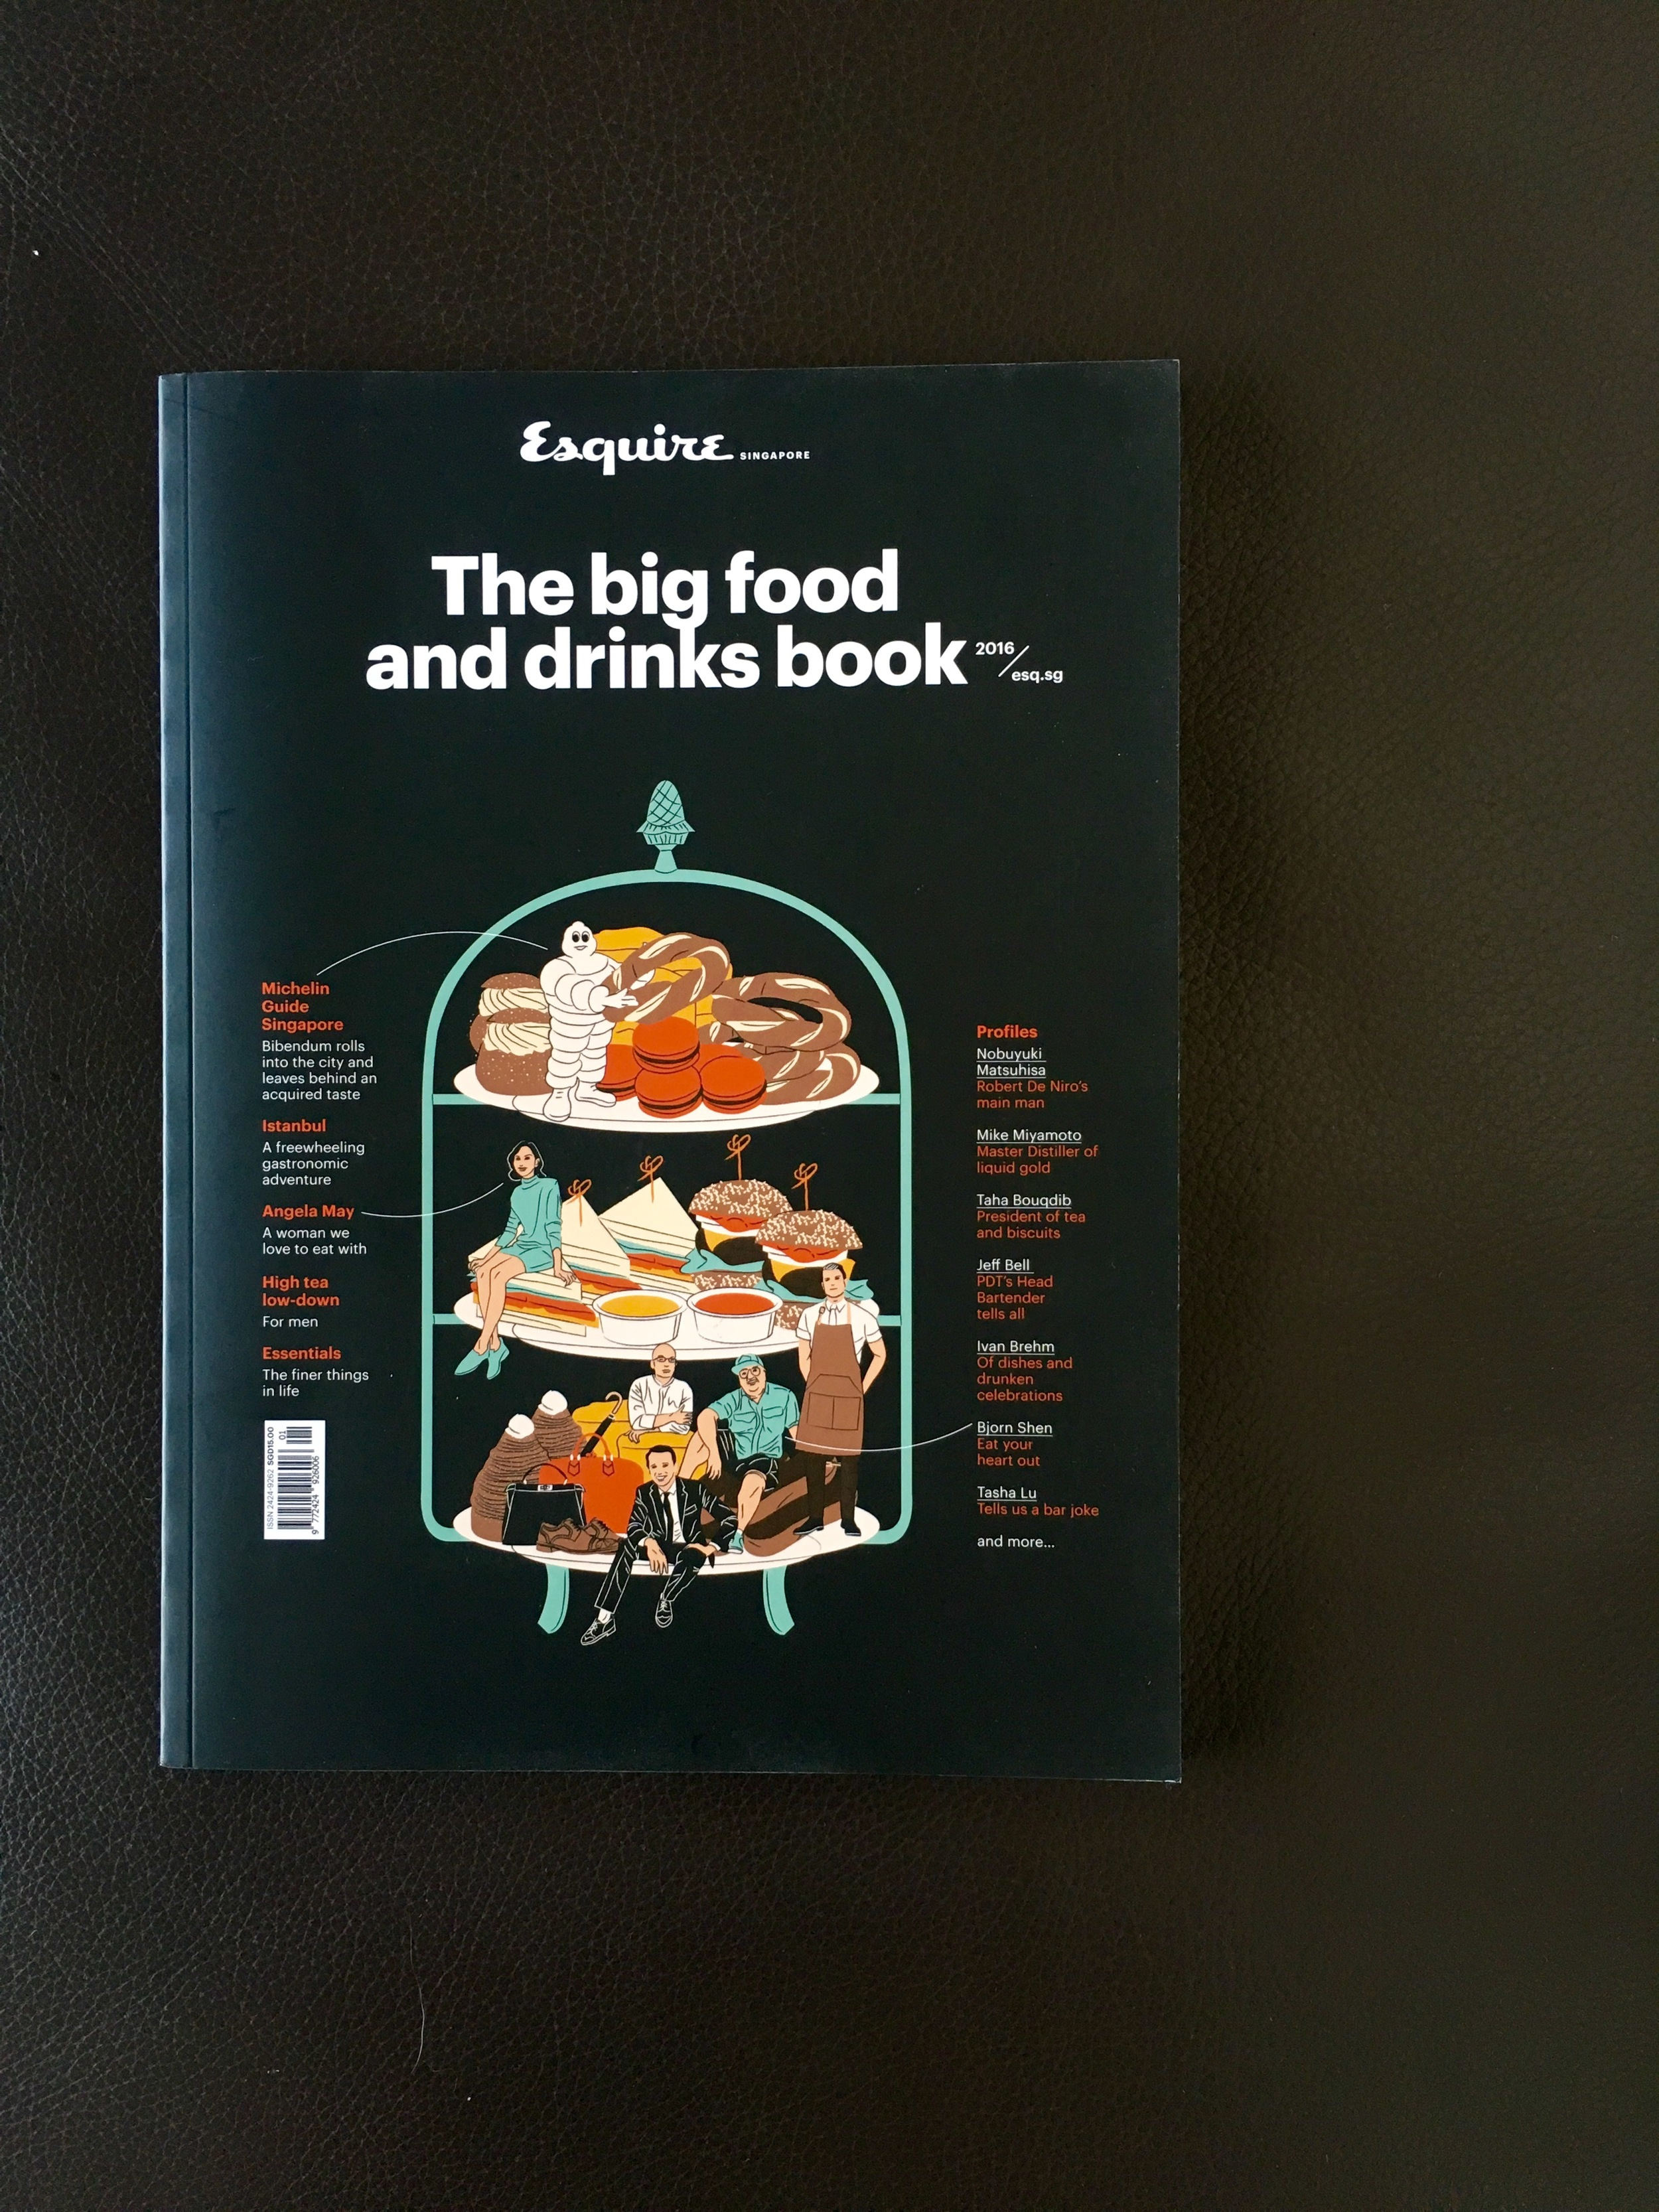 Esquire Singapore's Big Food and Drinks Book, July 2016